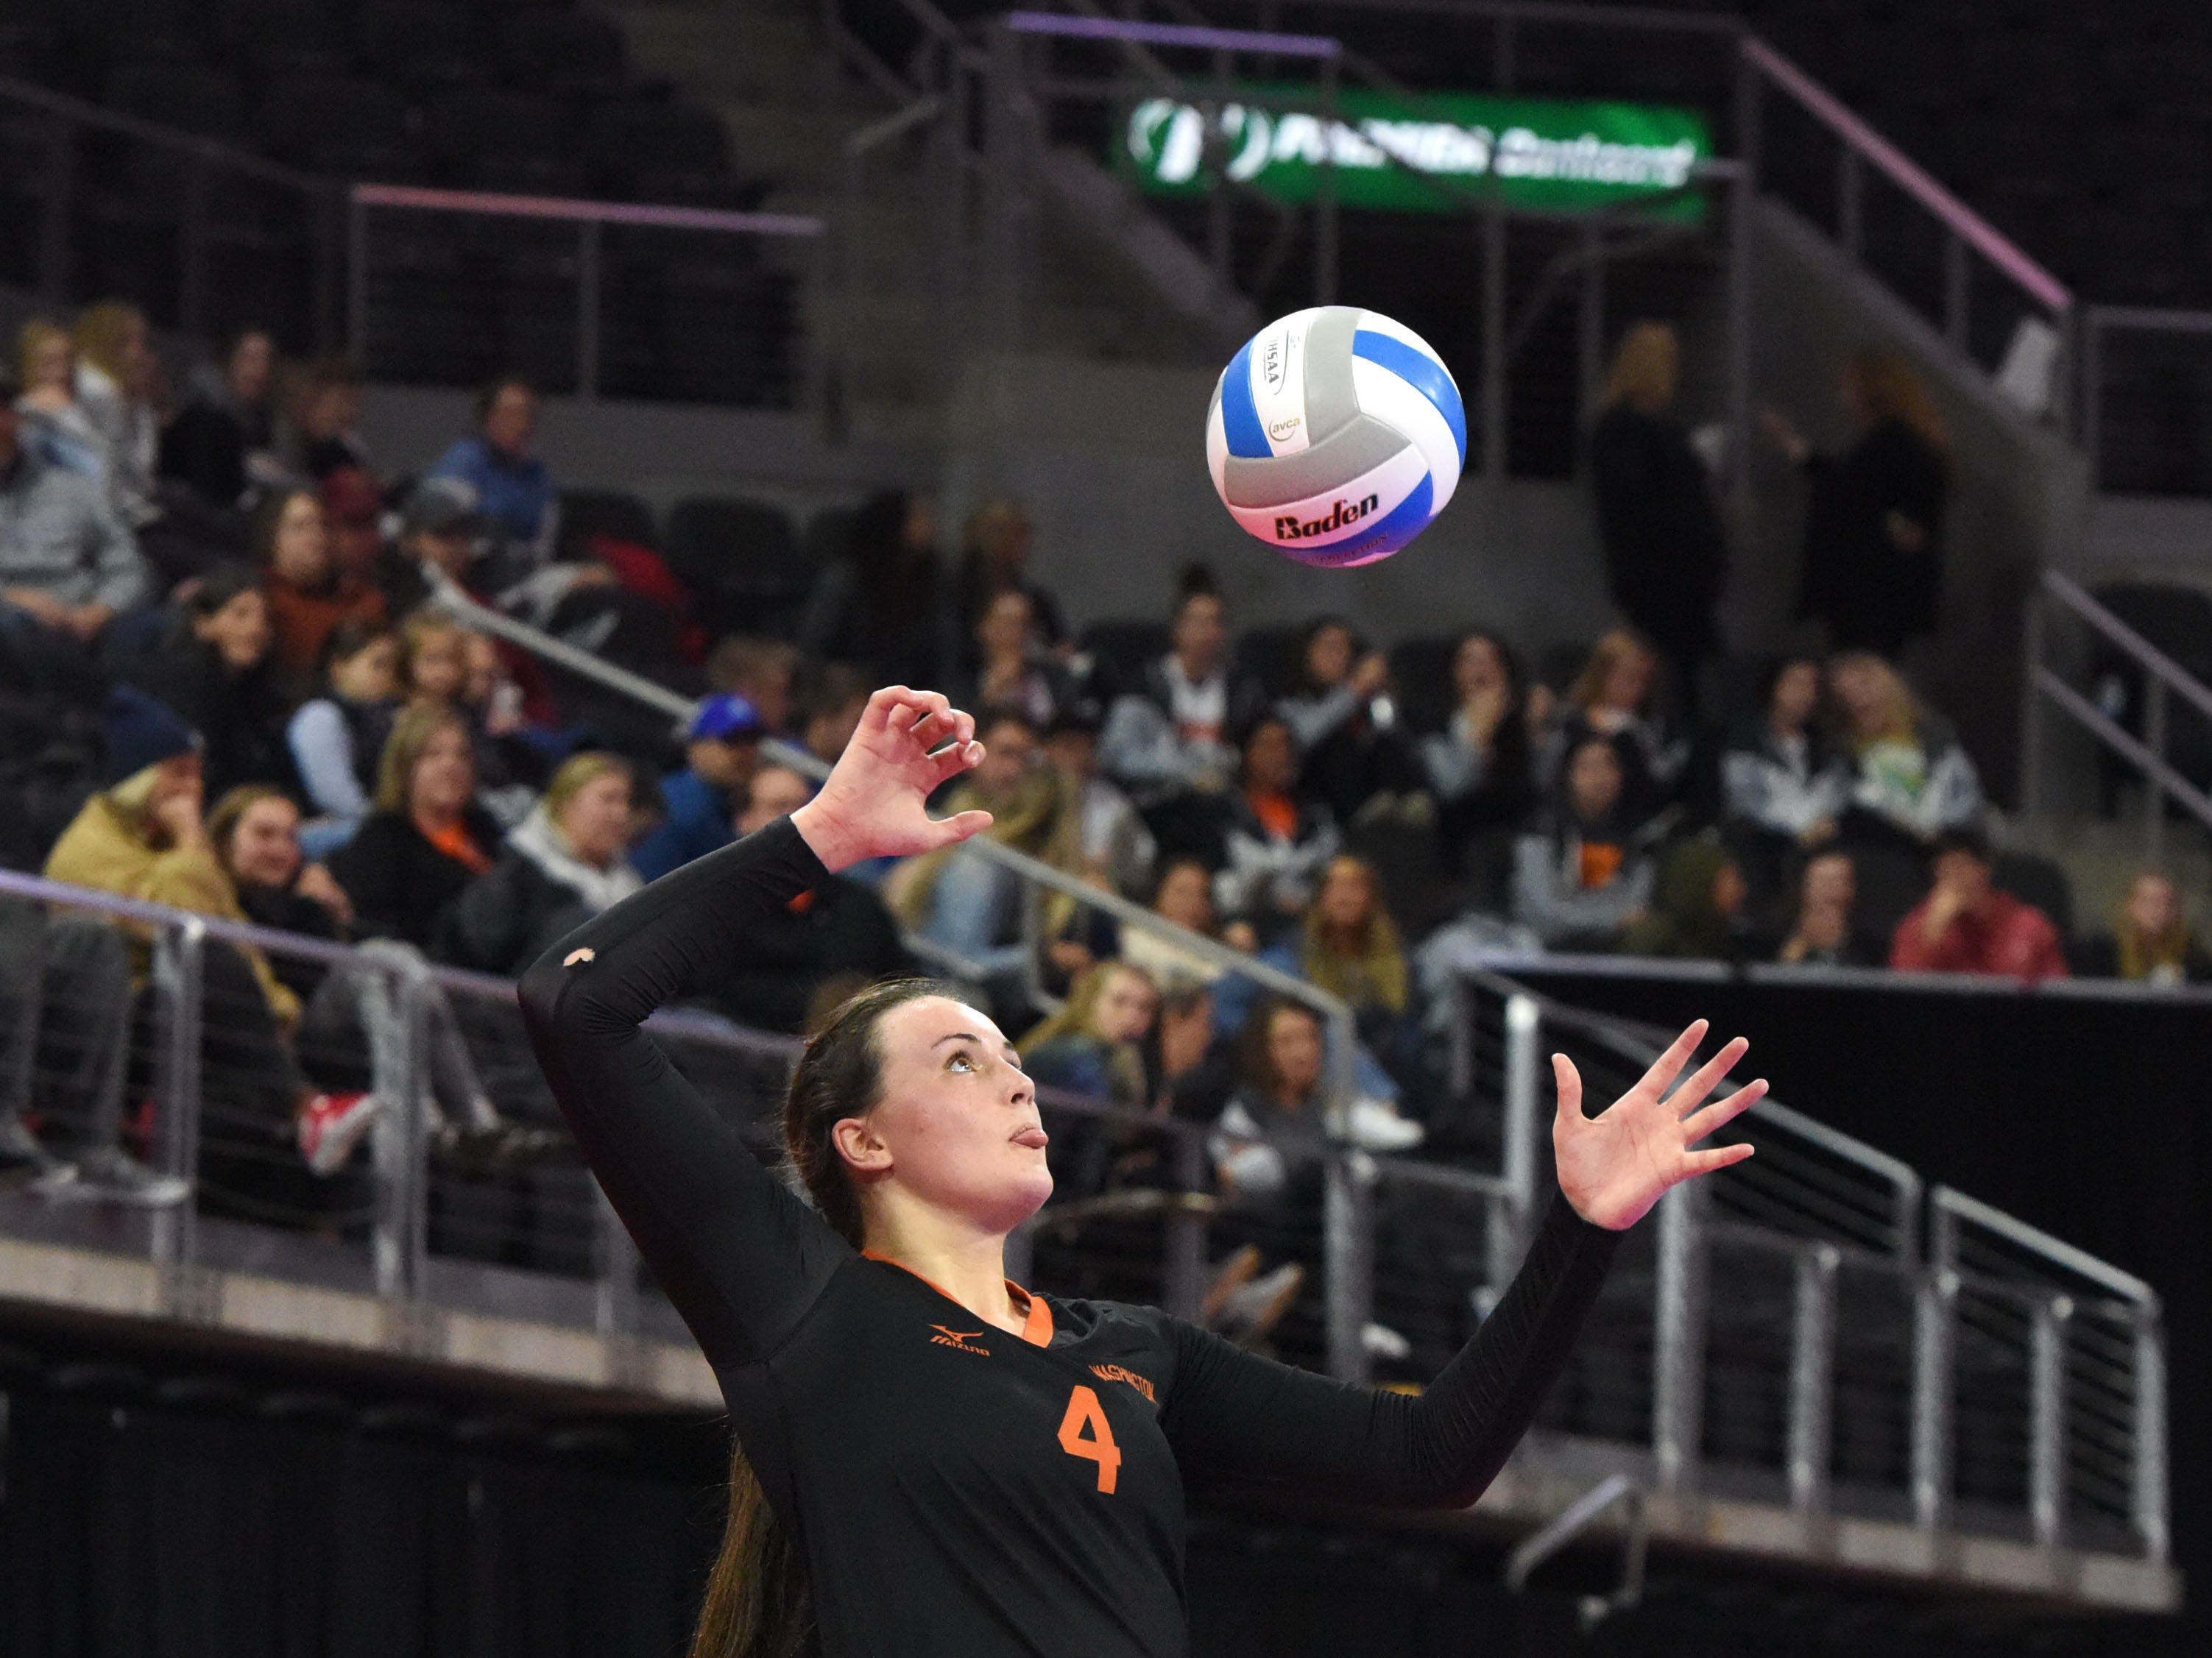 Washington's Lily Bartling (4) serves the ball during a match against Rapid City, Saturday, Nov. 17, 2018, at the Denny Sanford Premier Center in Sioux Falls, S.D.